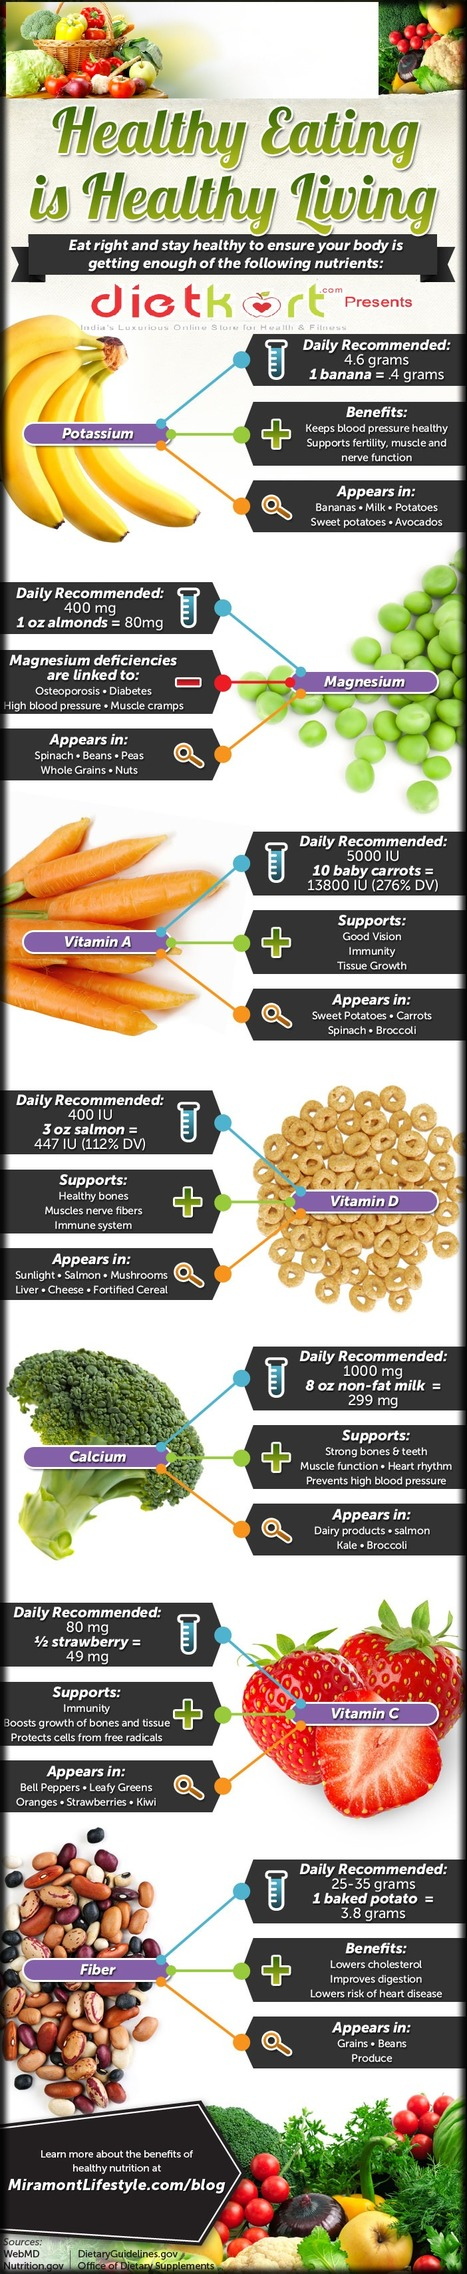 Healthy Eating - Healthy Living InfoGraphic | Health & Digital Tech Magazine - 2016 | Scoop.it